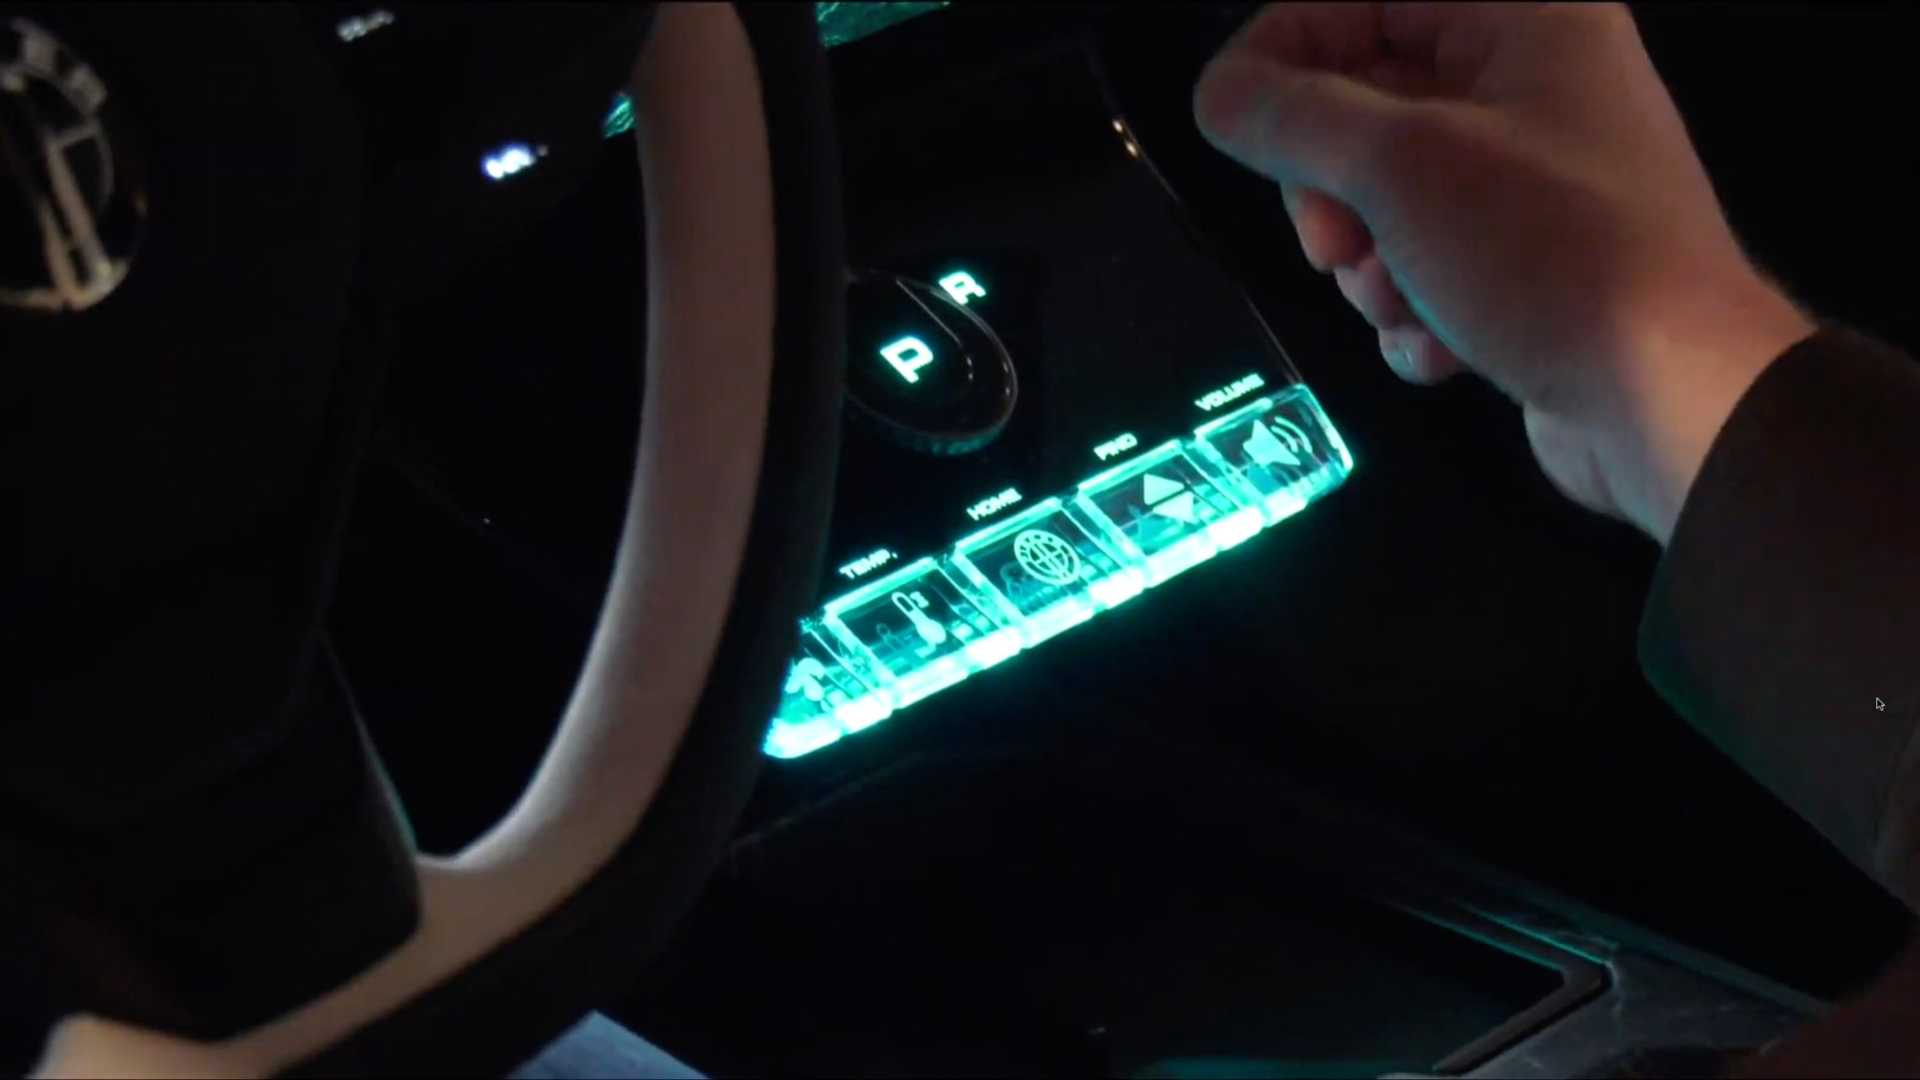 Fisker Ocean display buttons